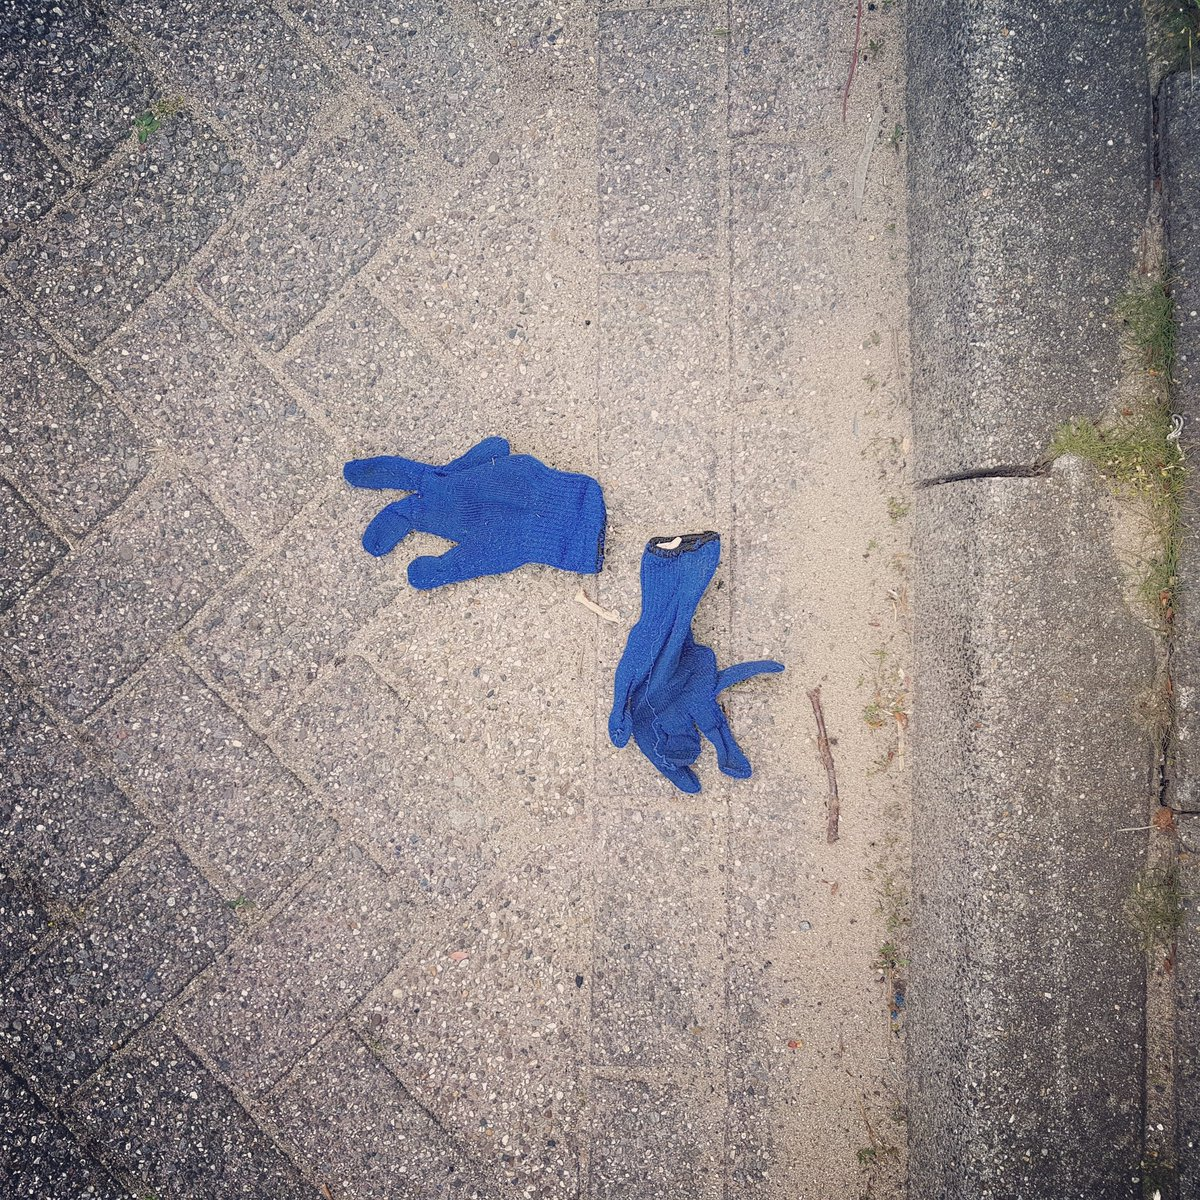 #lostgloves_collected #lostglovelover  #lostgloves #lost #gloves #autumn #winter 2018/19 nr160 a+b https://t.co/vmhgvJYLFP